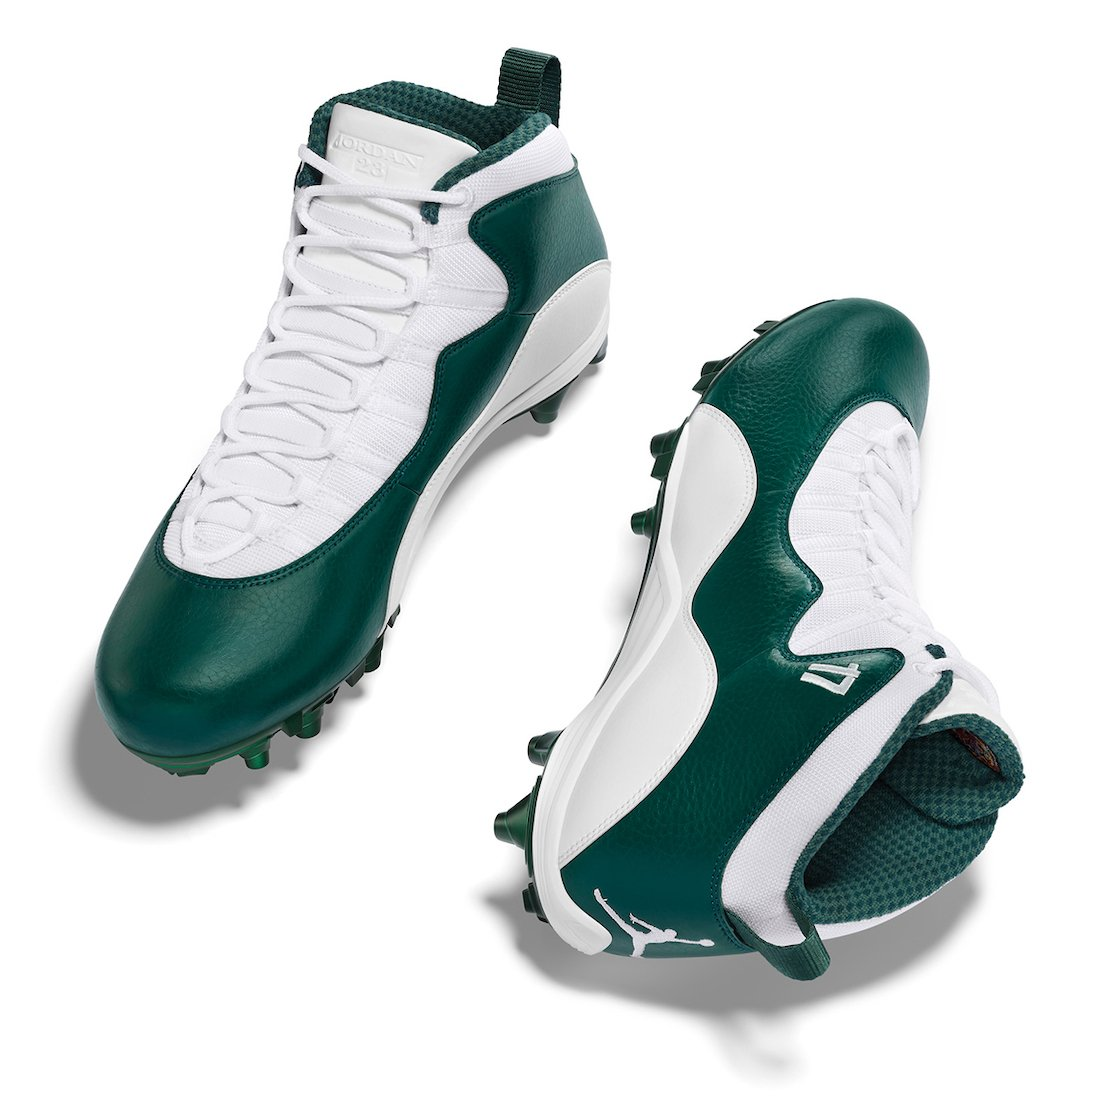 Alshon Jeffery Air Jordan 10 NFL 2020 PE Cleats